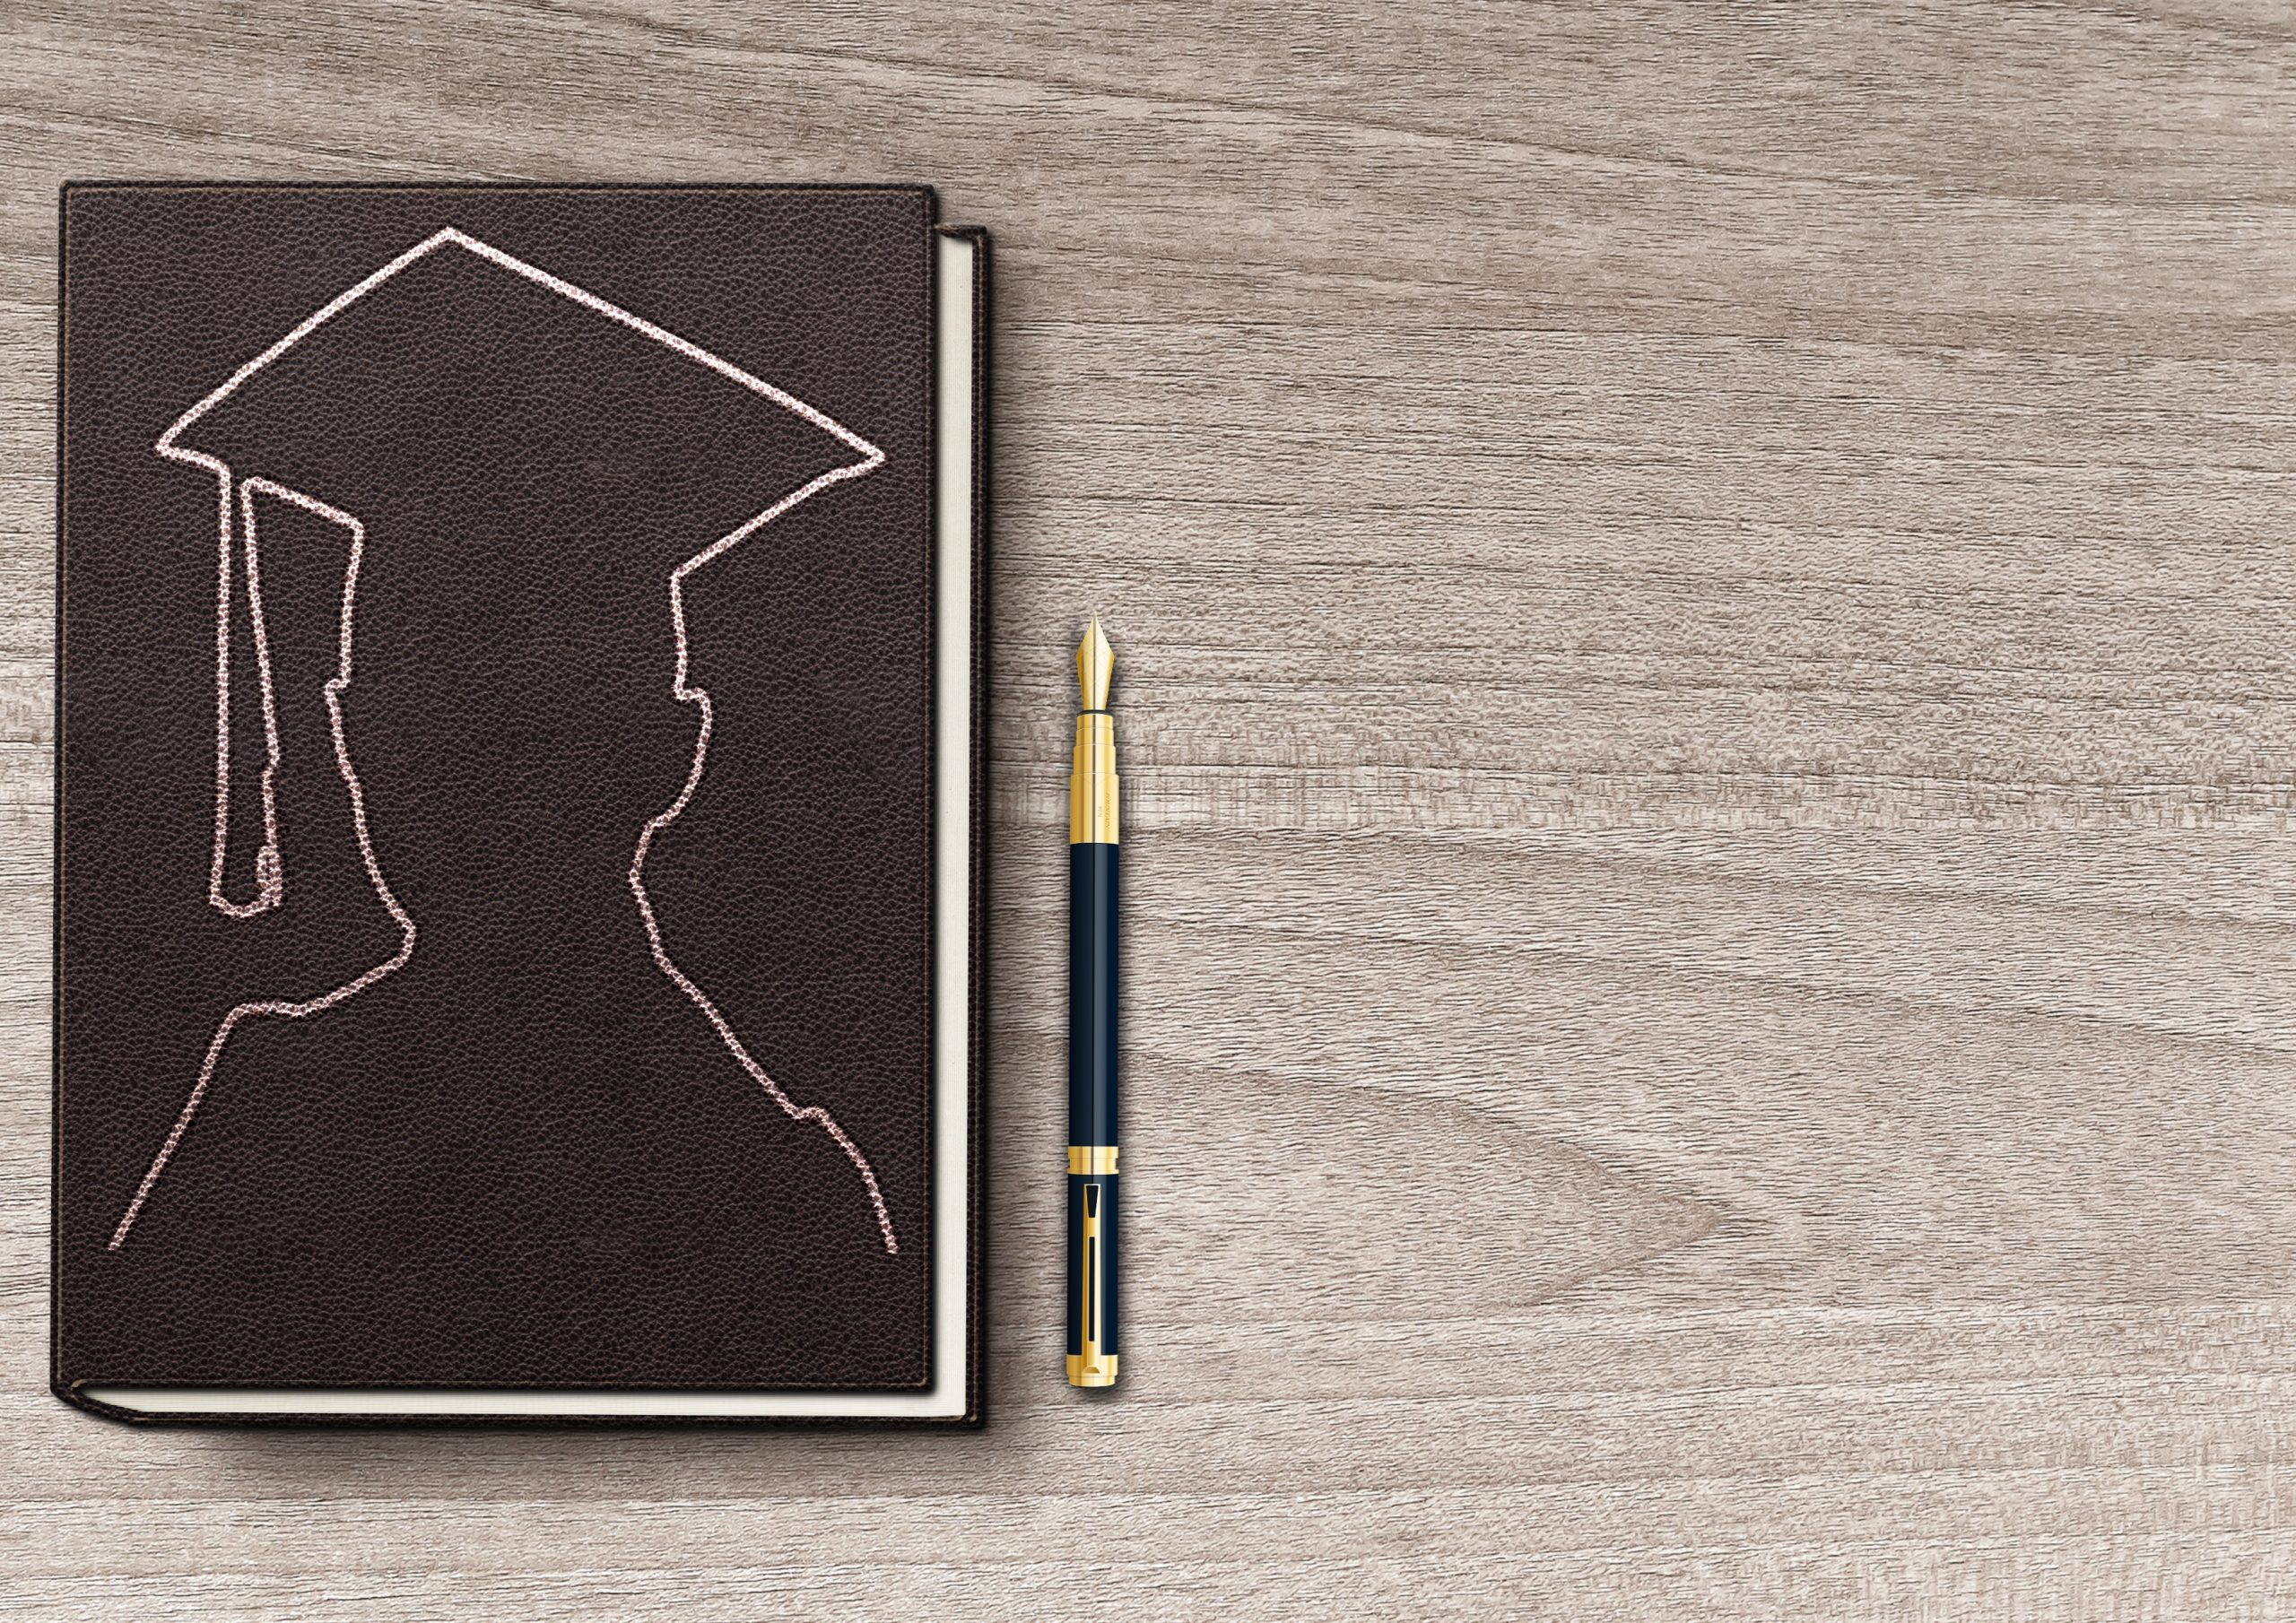 Student Book With Pen On Wooden Board Chalk outline of a graduate